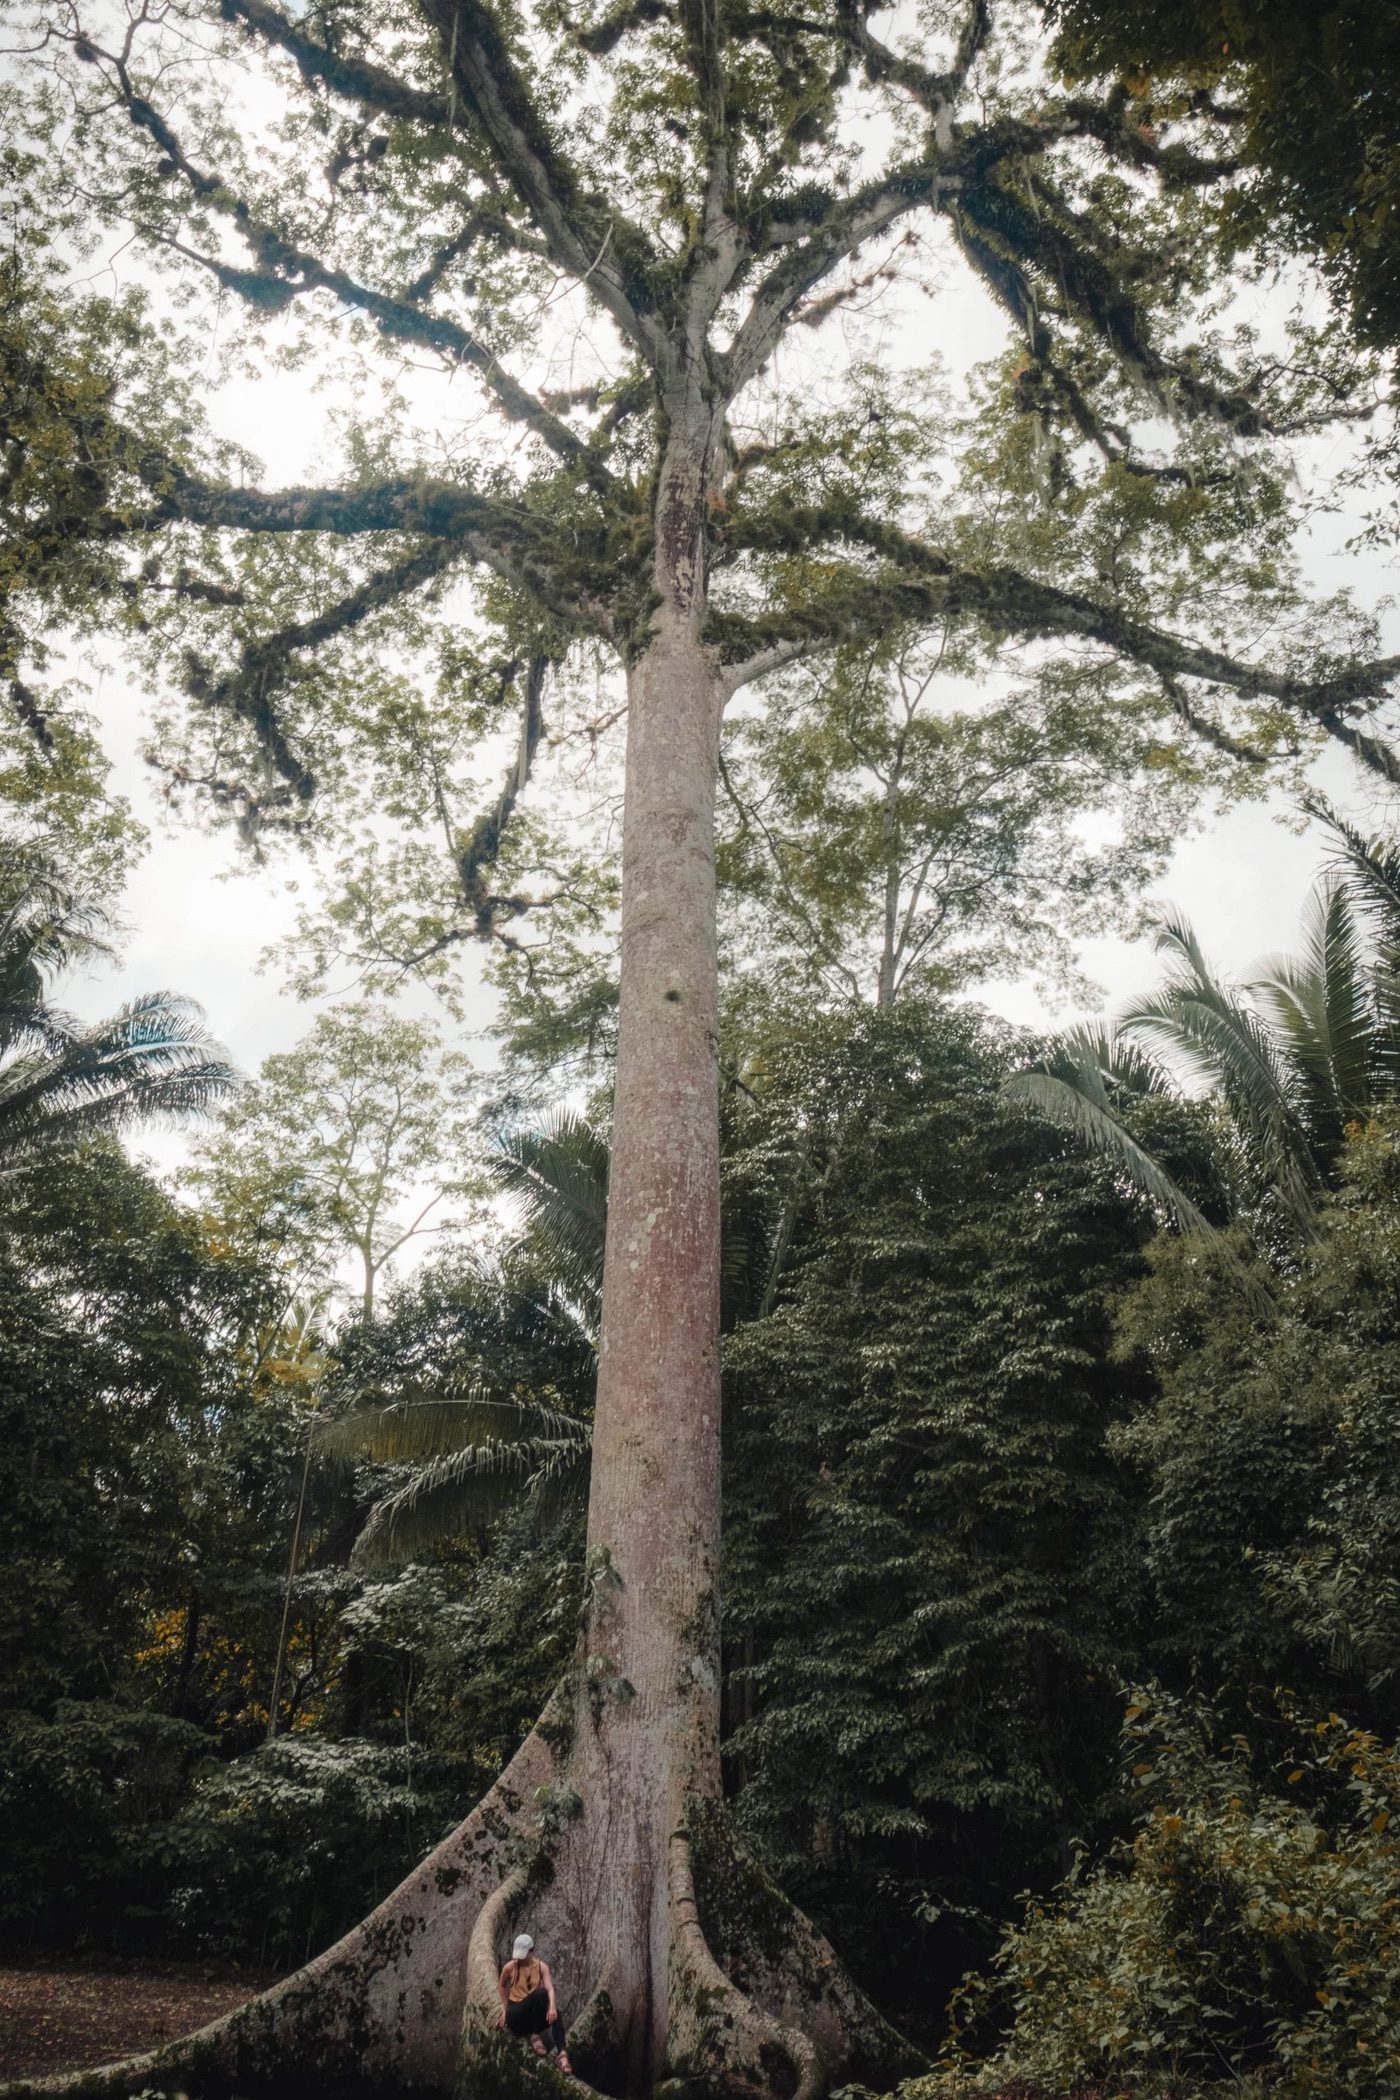 The story of Ceiba Trees in Central America